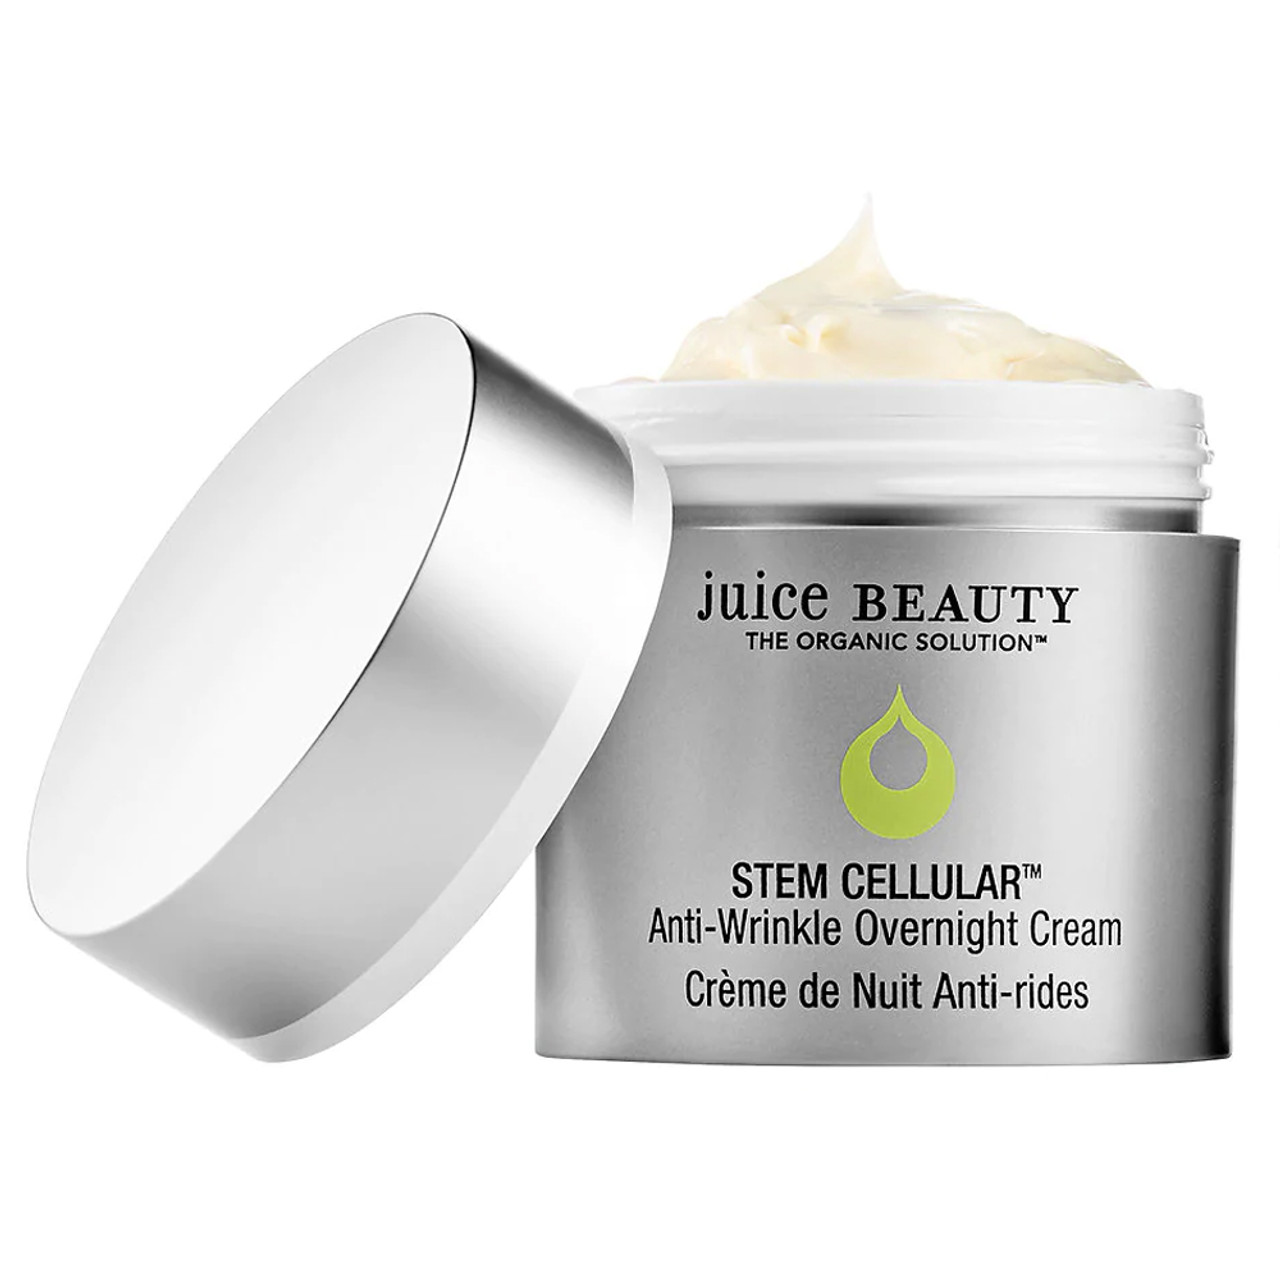 Juice Beauty SC Anti-Wrinkle Overnight Cream